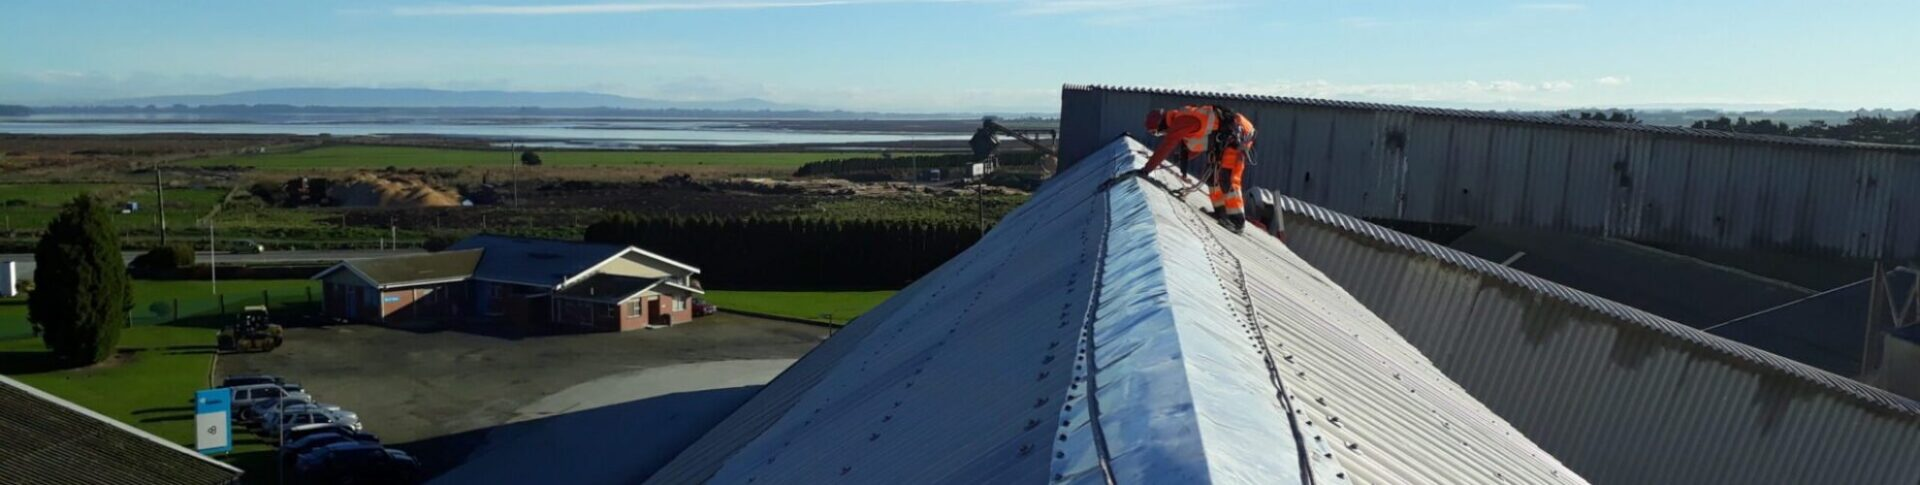 adventure southland, industrial rope acces,, gutter cleaning, commercial gutter cleaning, rope access professionals, plant maintenance, site maintence, roof maintenace, gutter maintenance, roof cleaning, industrial, working at heights